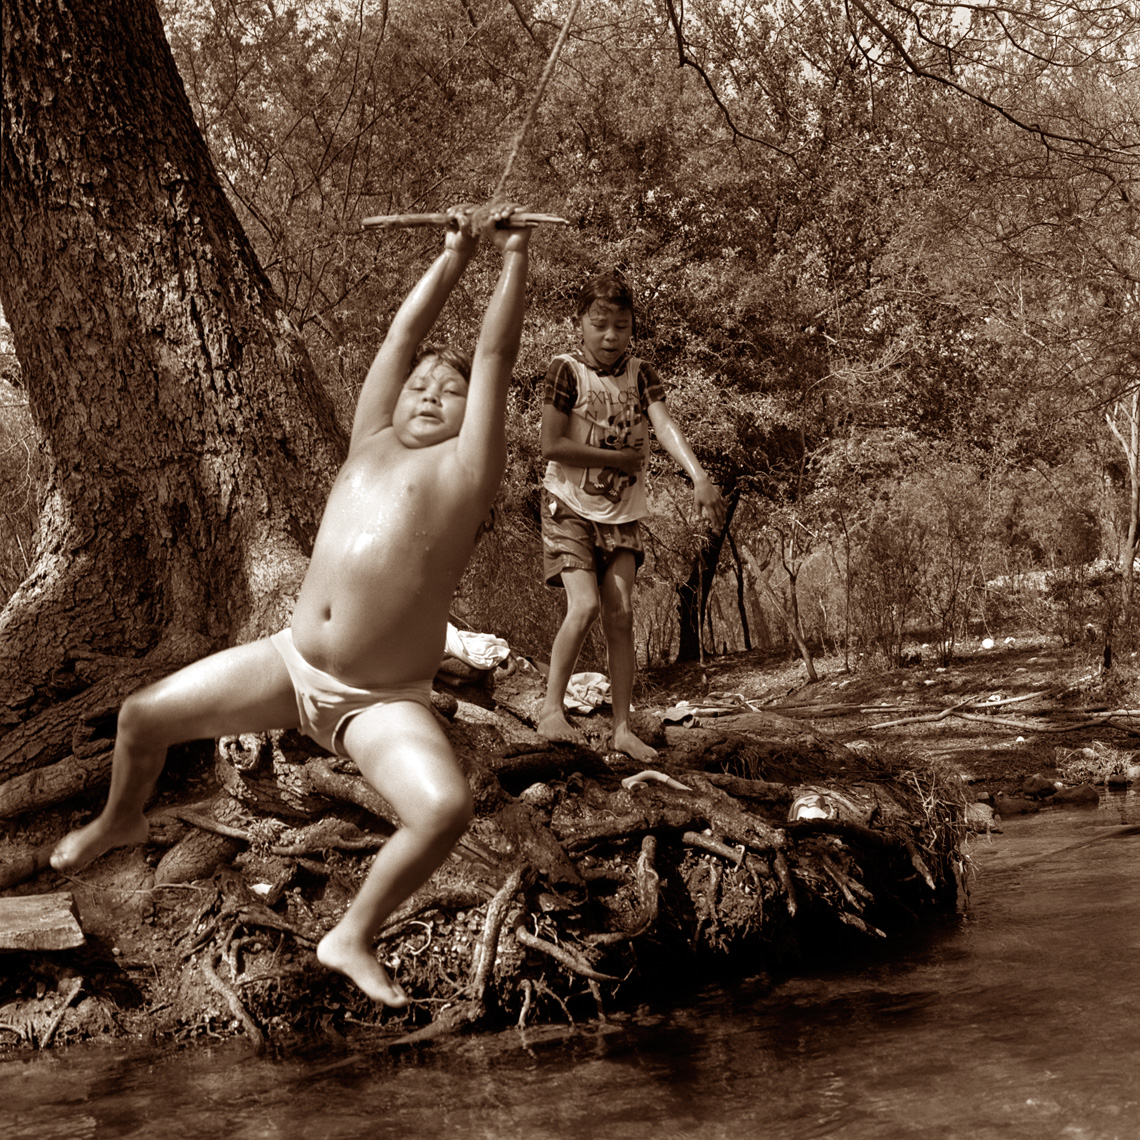 Kickapoo-Boy-Swinging.jpg